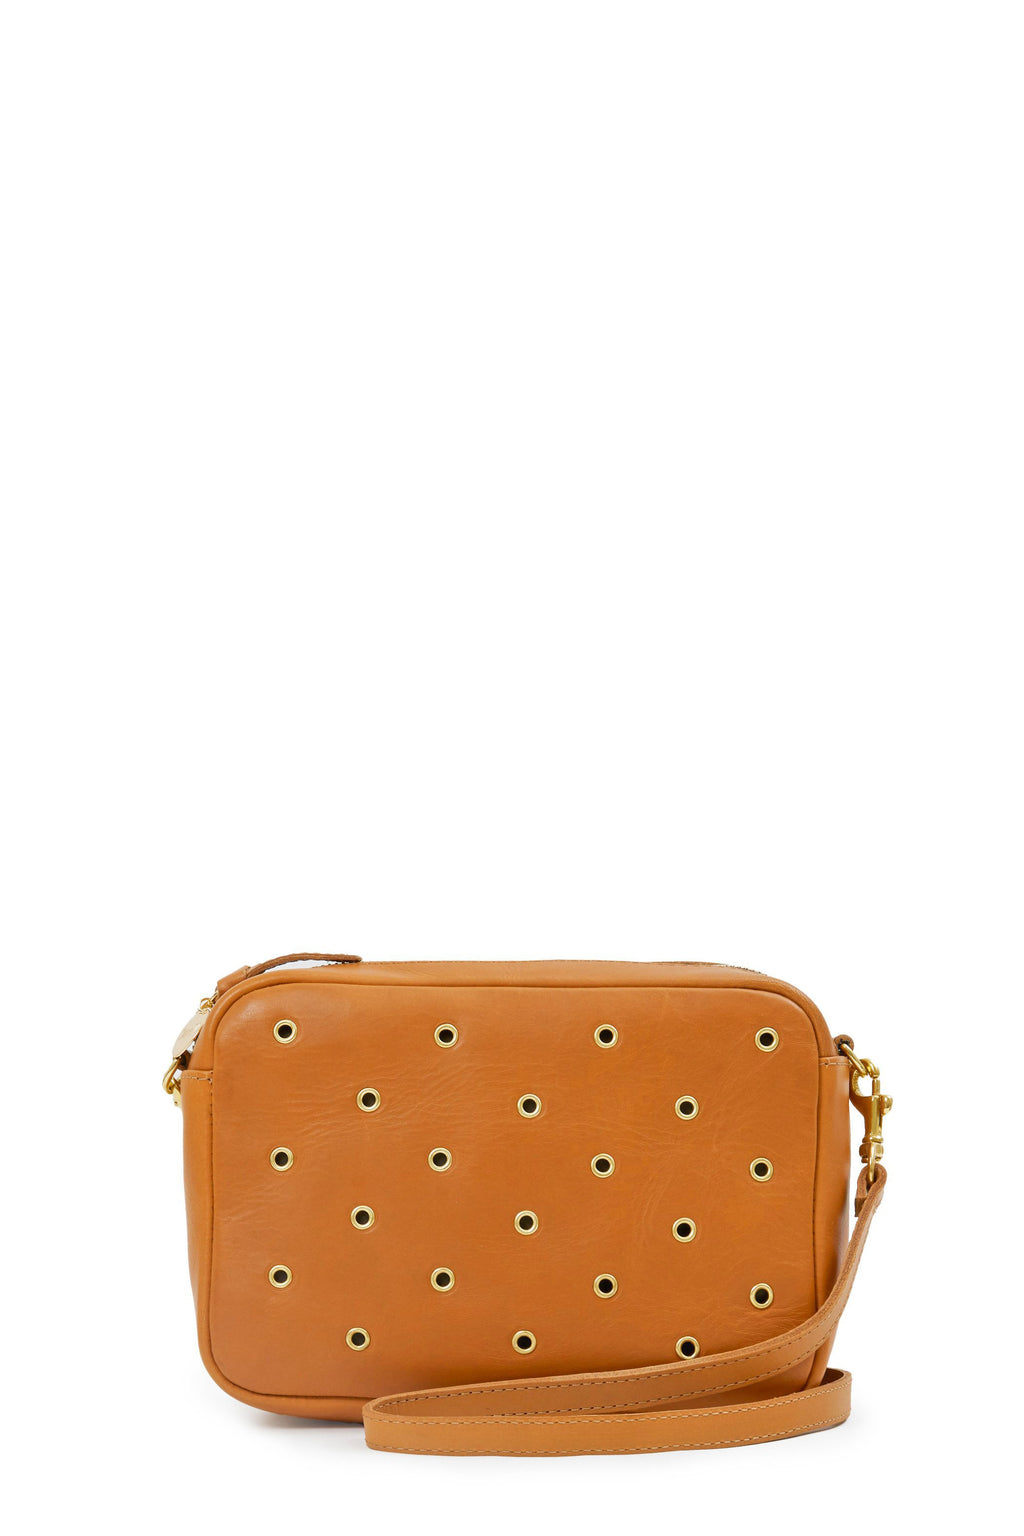 clare v. midi sac cuoio with grommets